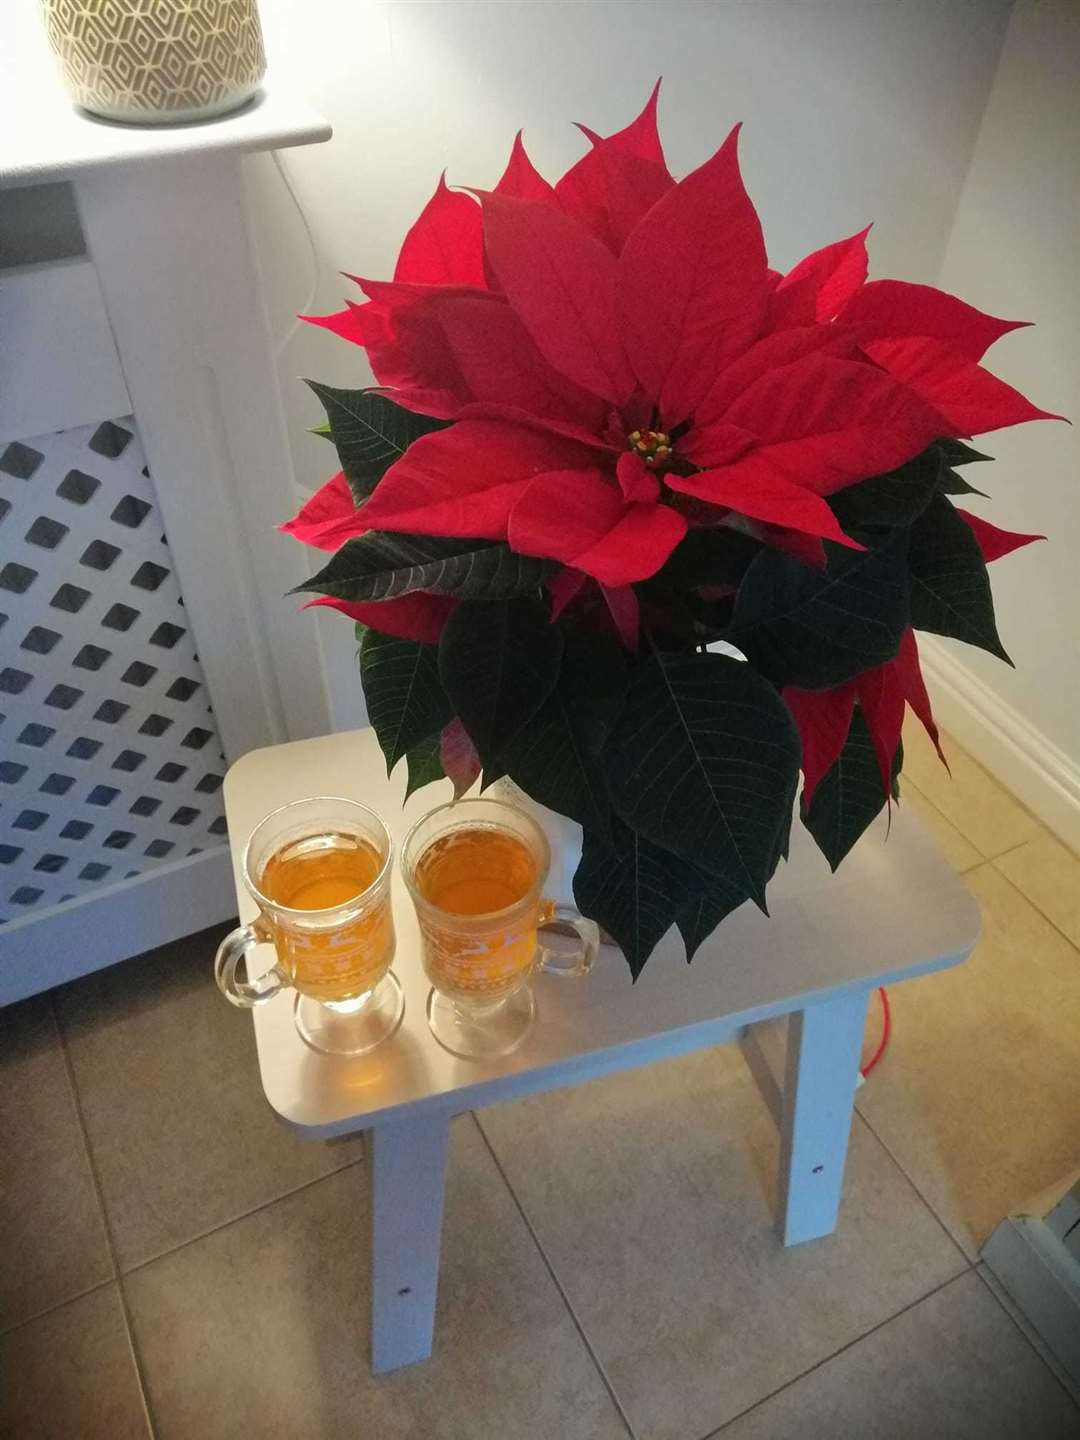 The mulled cider being served as a takeaway product during the pub's closure (43323984)